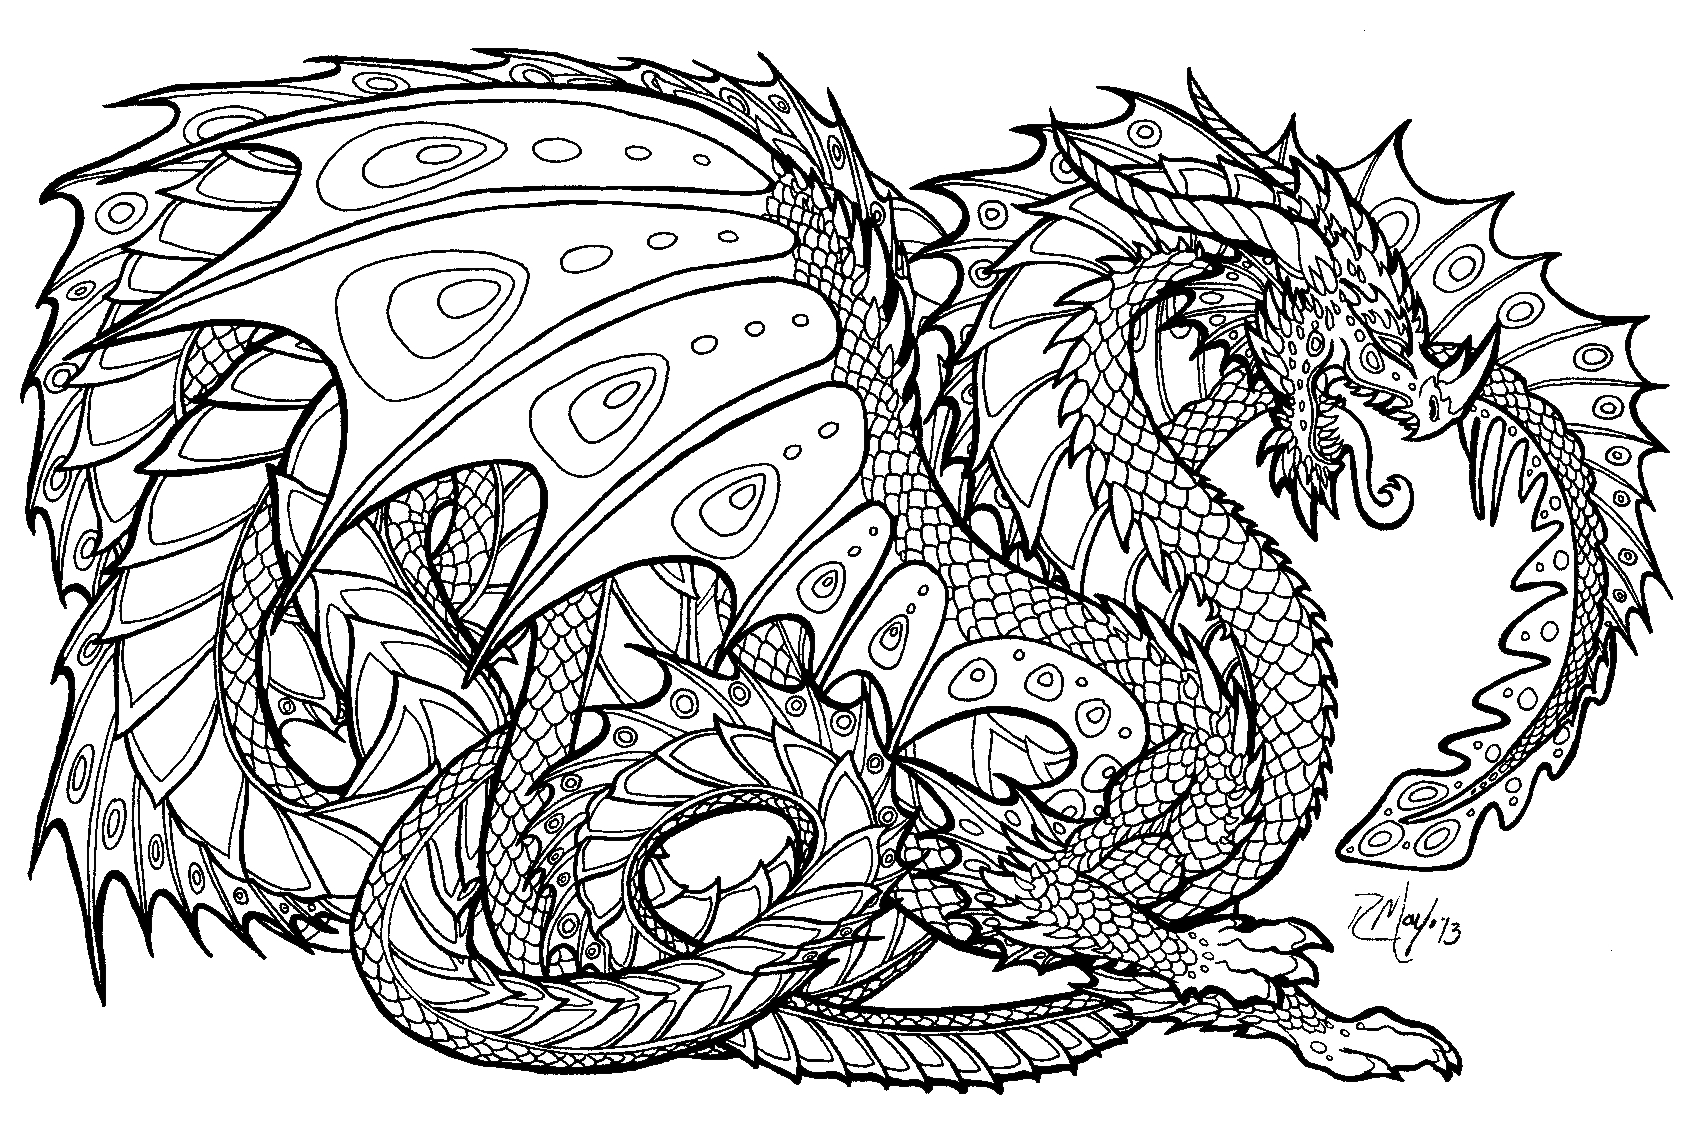 detailed coloring pages printable detailed coloring pages for adults free printable printable coloring detailed pages